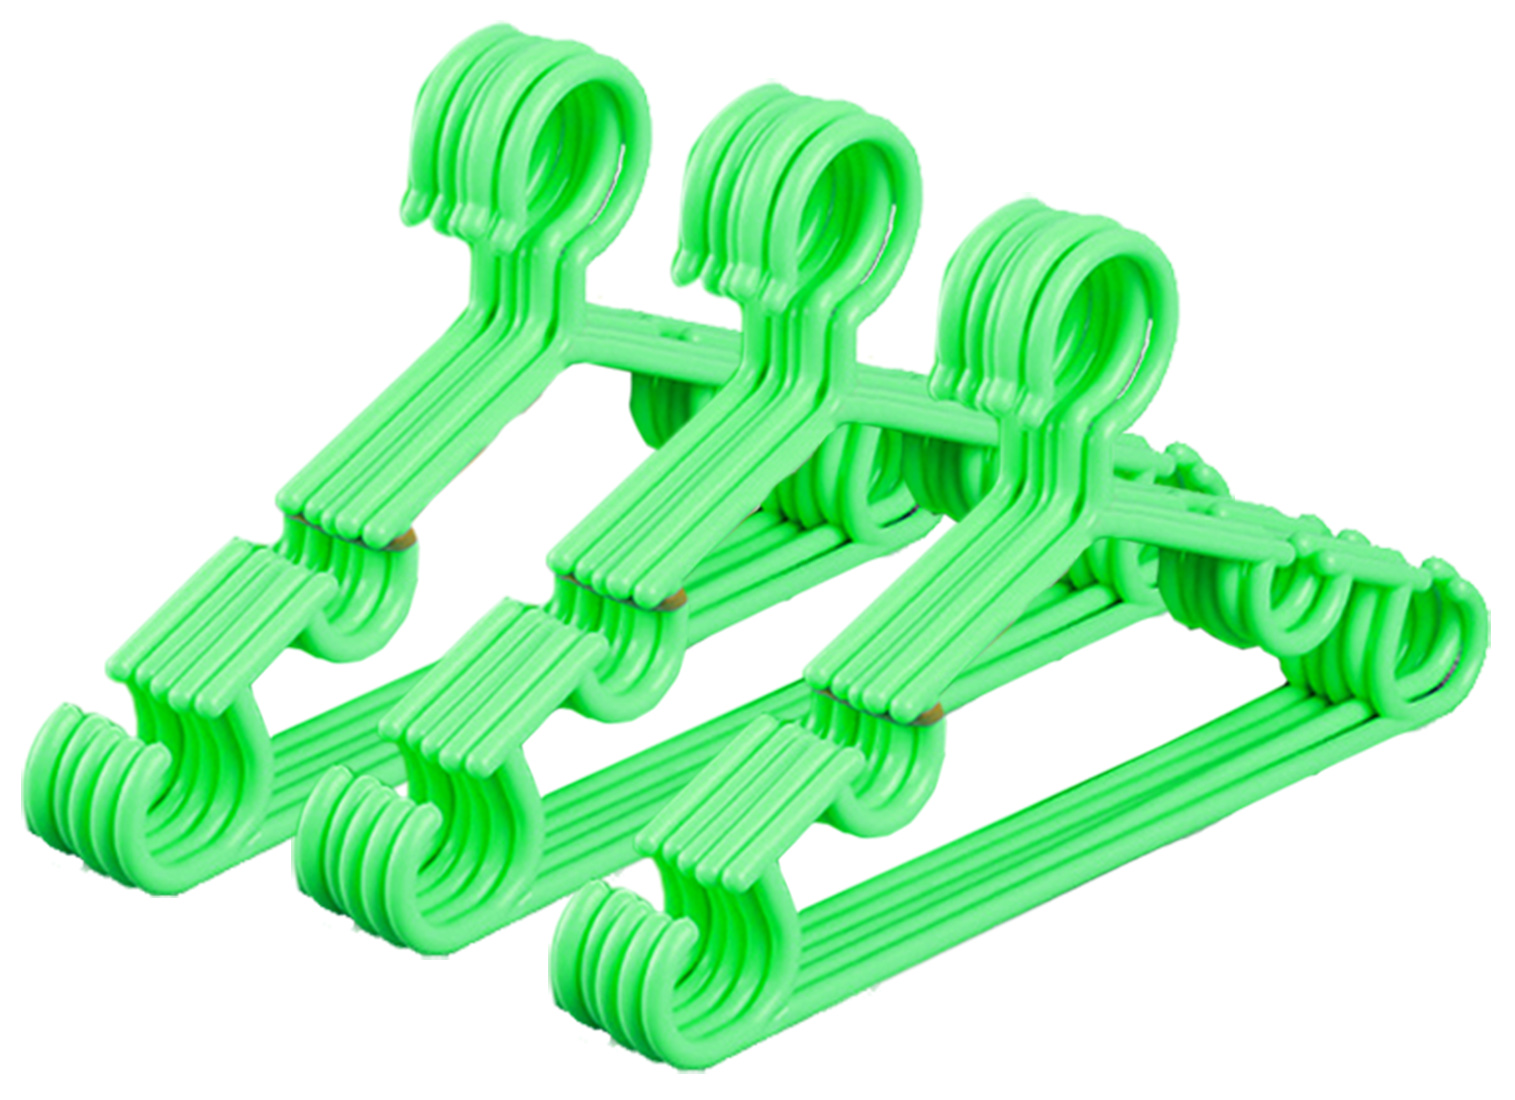 Kuber Industries Plastic 15 Pieces Baby Hanger Set for Wardrobe (Green) -CTKTC39431